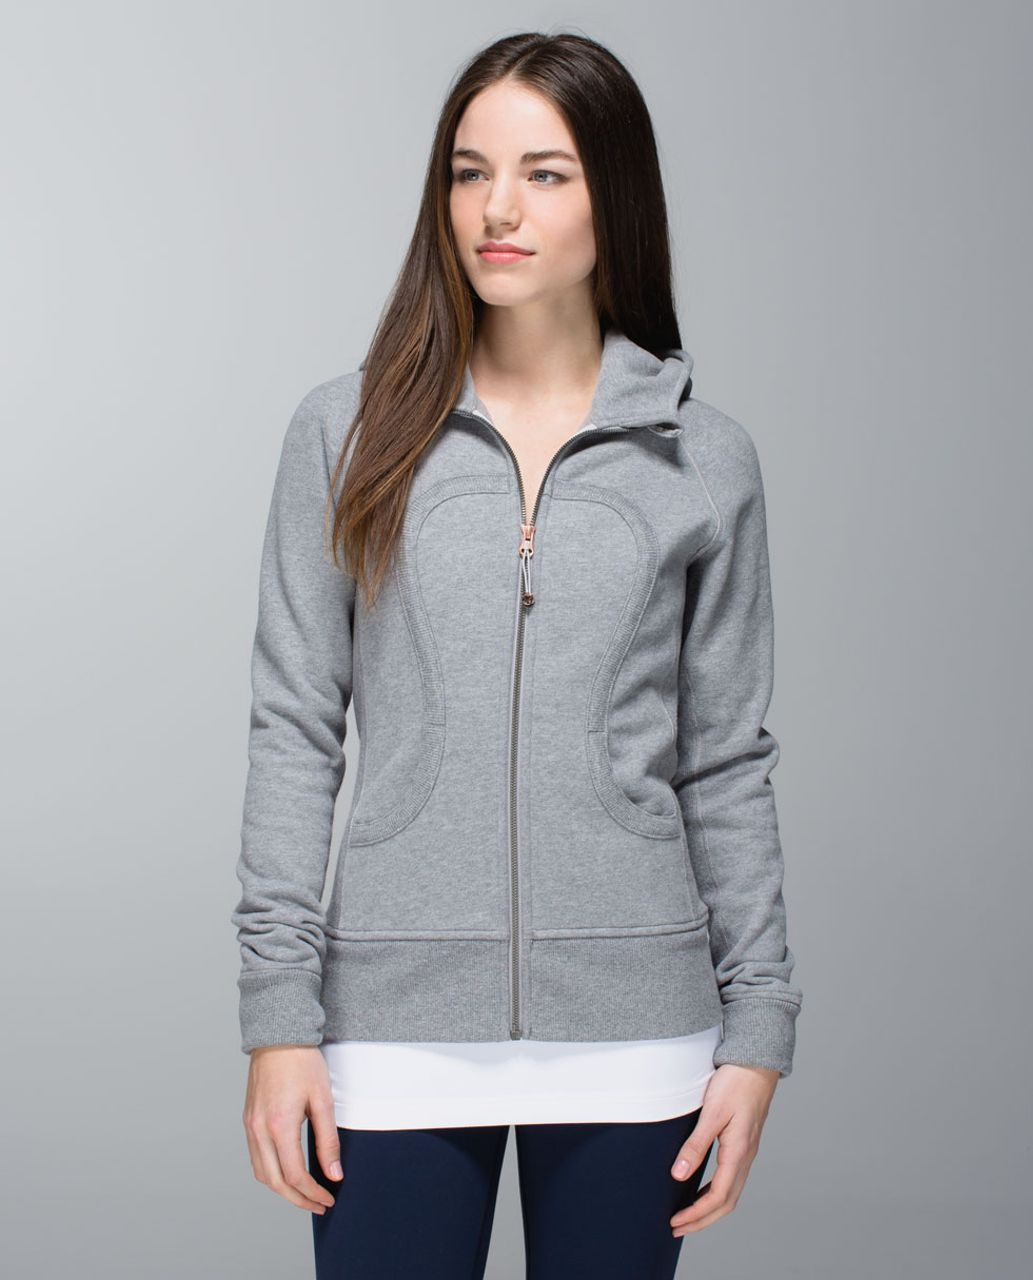 Lululemon Scuba Hoodie II - Heathered Medium Grey / Ambient Grey